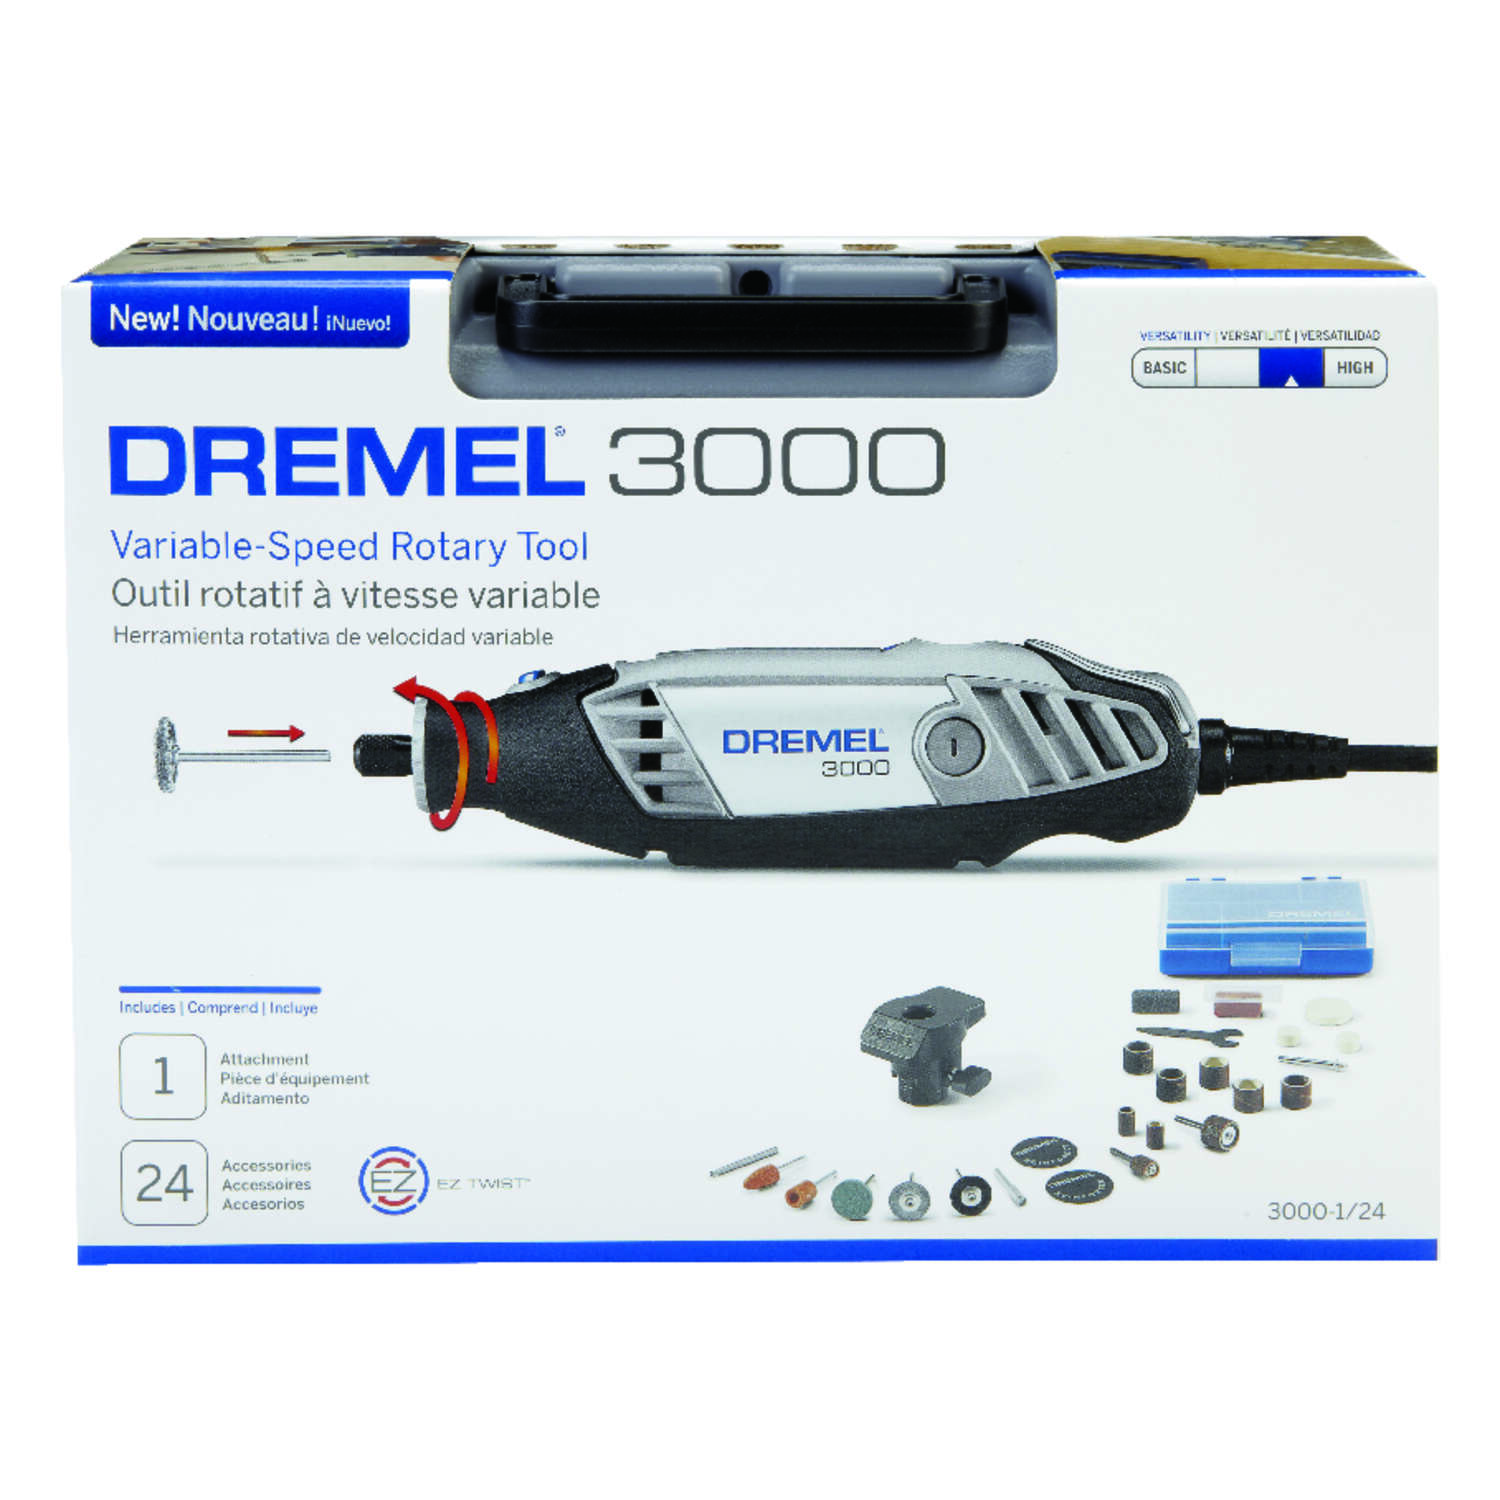 Dremel 3000 1/8 in. Corded Rotary Tool Kit 1.2 amps 120 volt 35000 rpm